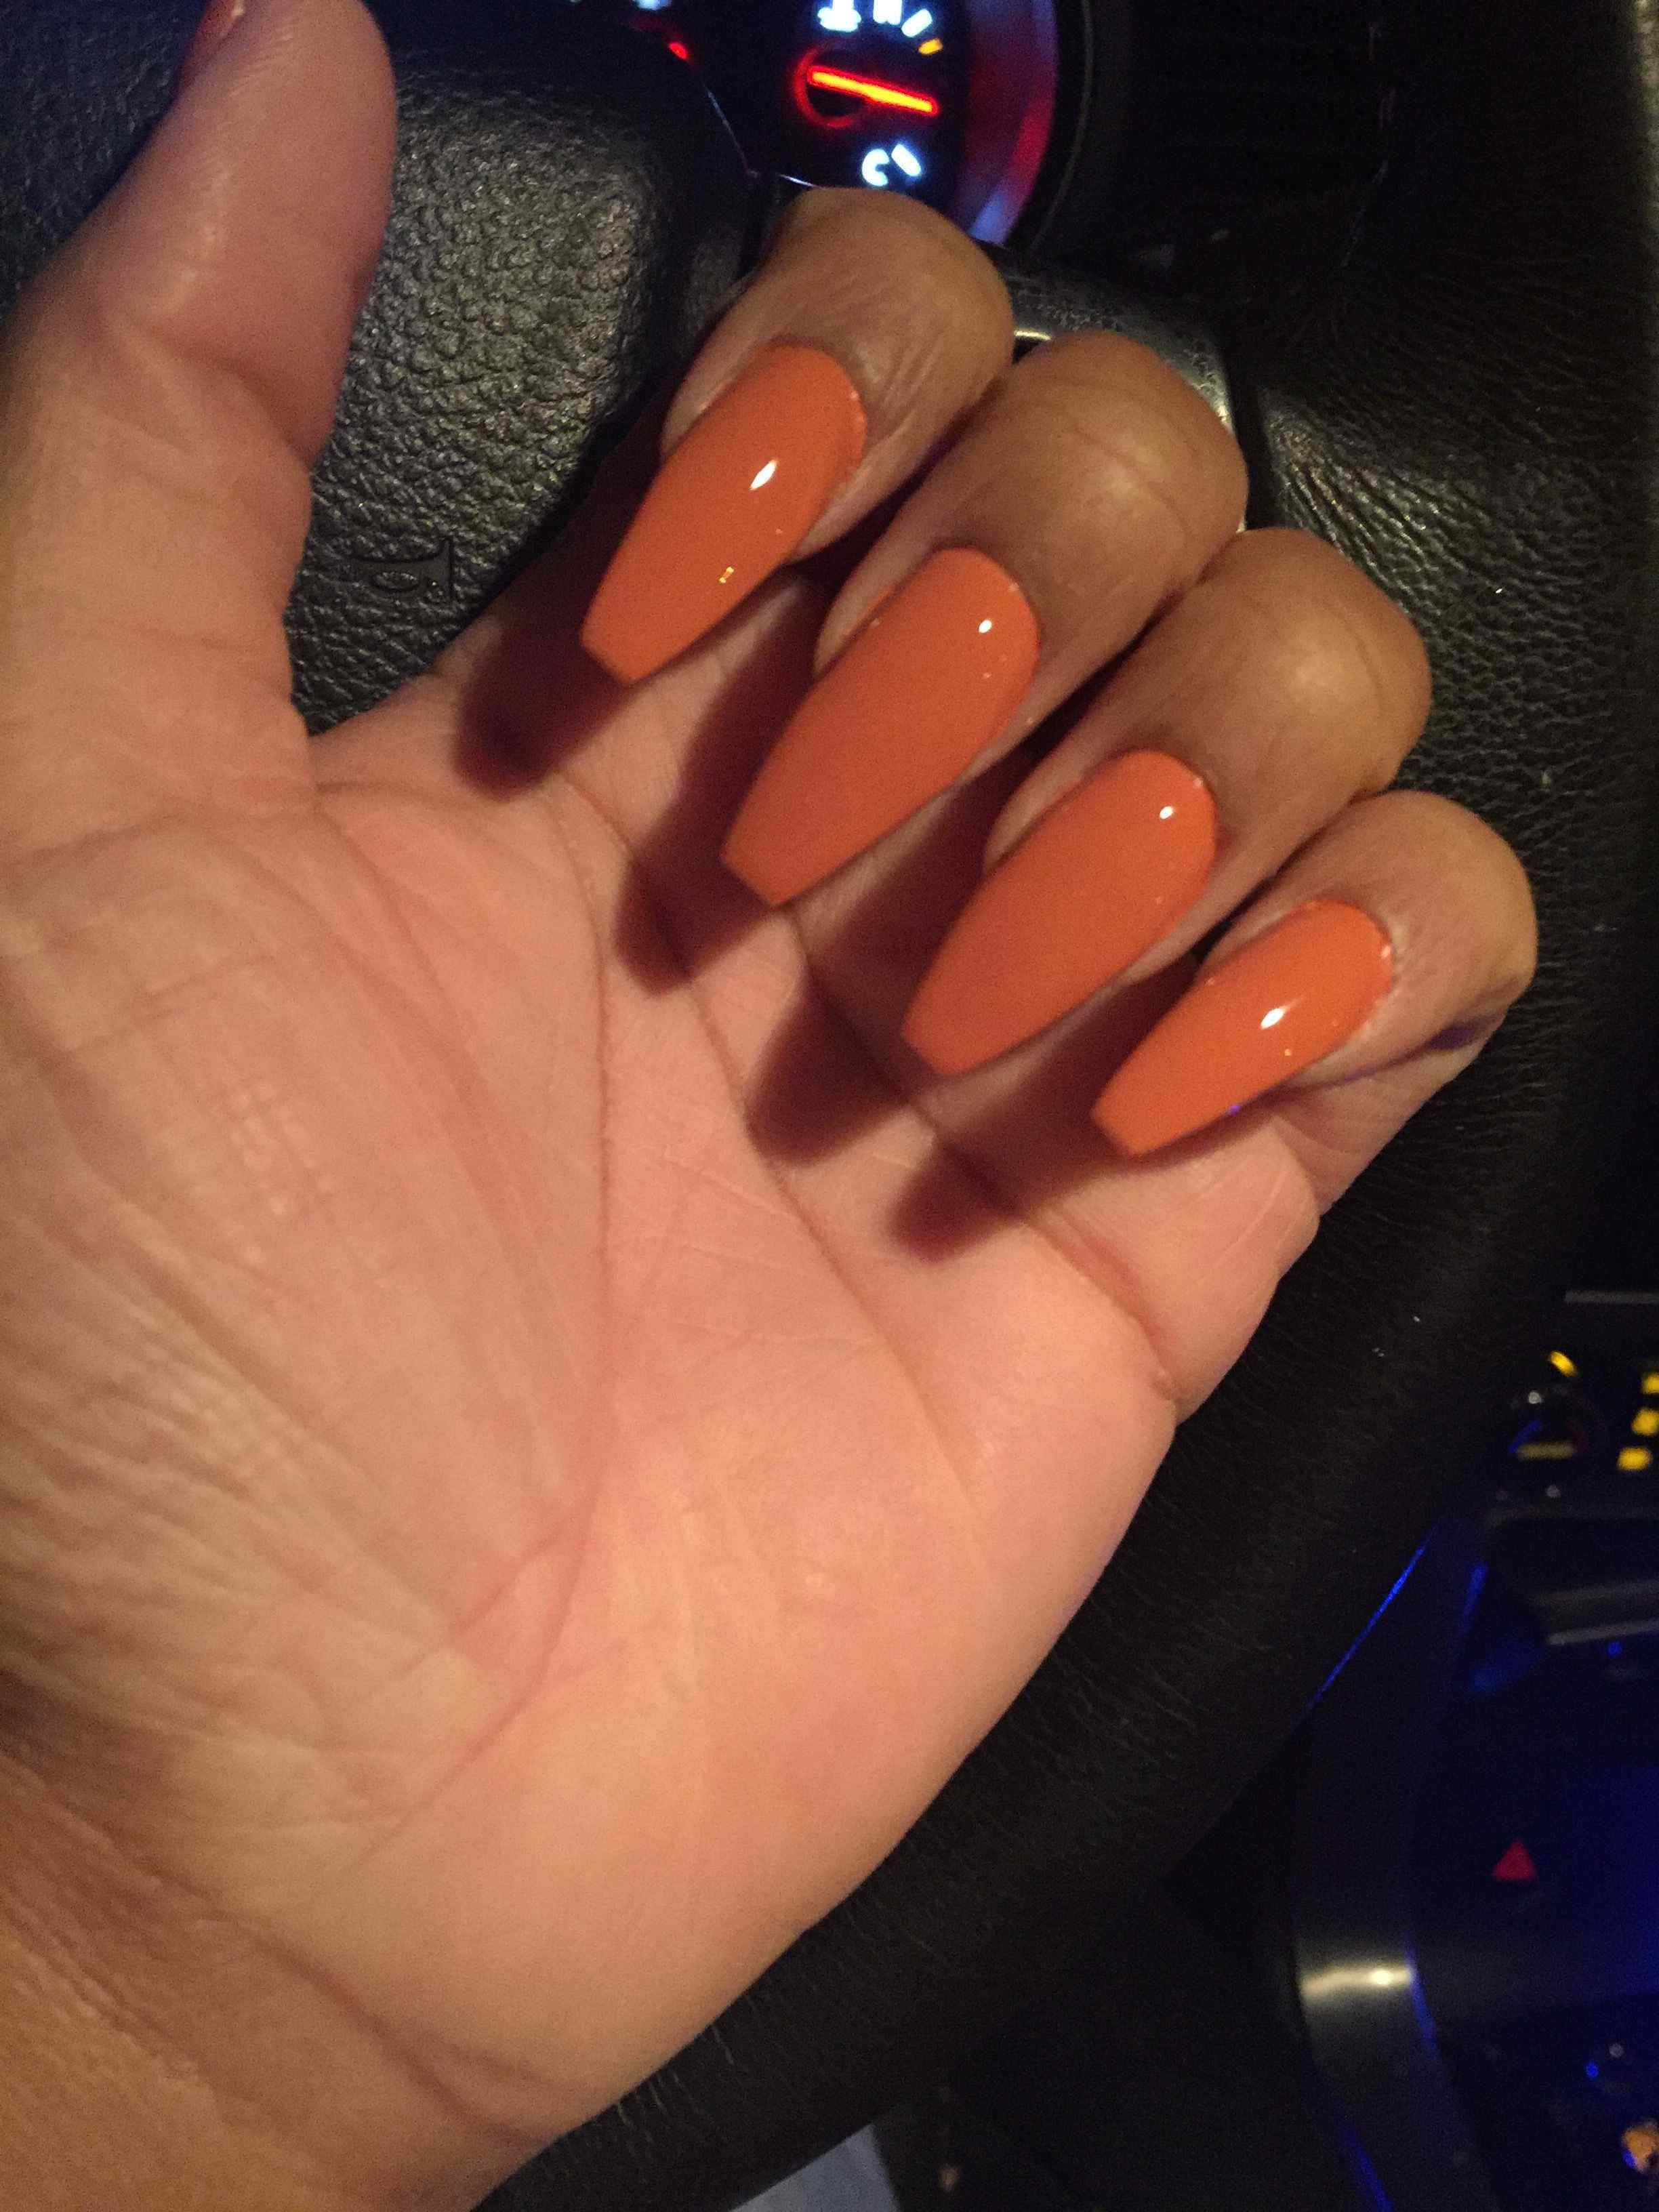 Essential Things For Awesome Fall Nails Colors Acrylic Coffin Creative Ways Coloradorockiescp Com Orange Nails Trendy Nails Fall Acrylic Nails